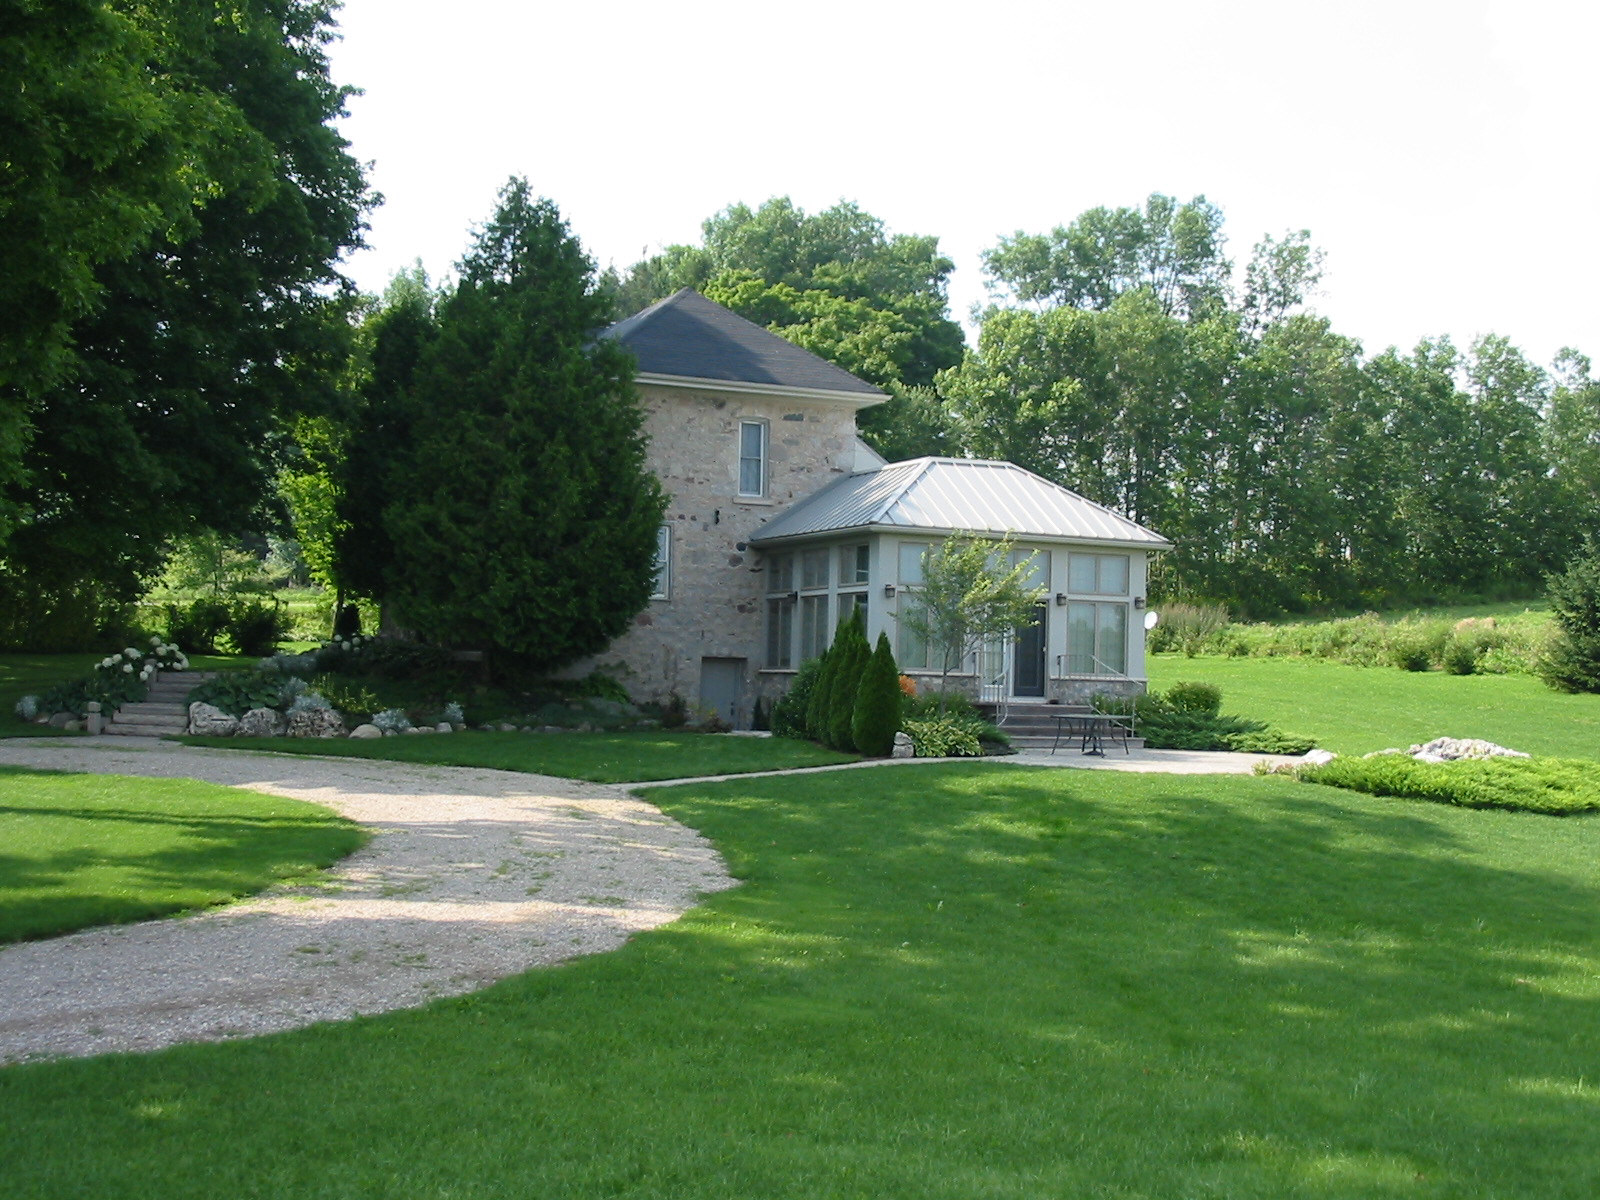 Patio for old stone farmhouse near Belwood